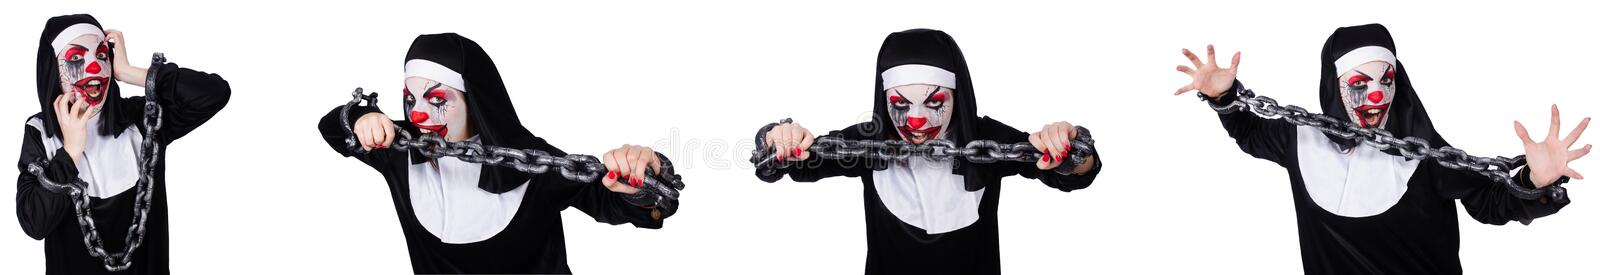 The weird female nun with shackles isolated on white royalty free stock photos